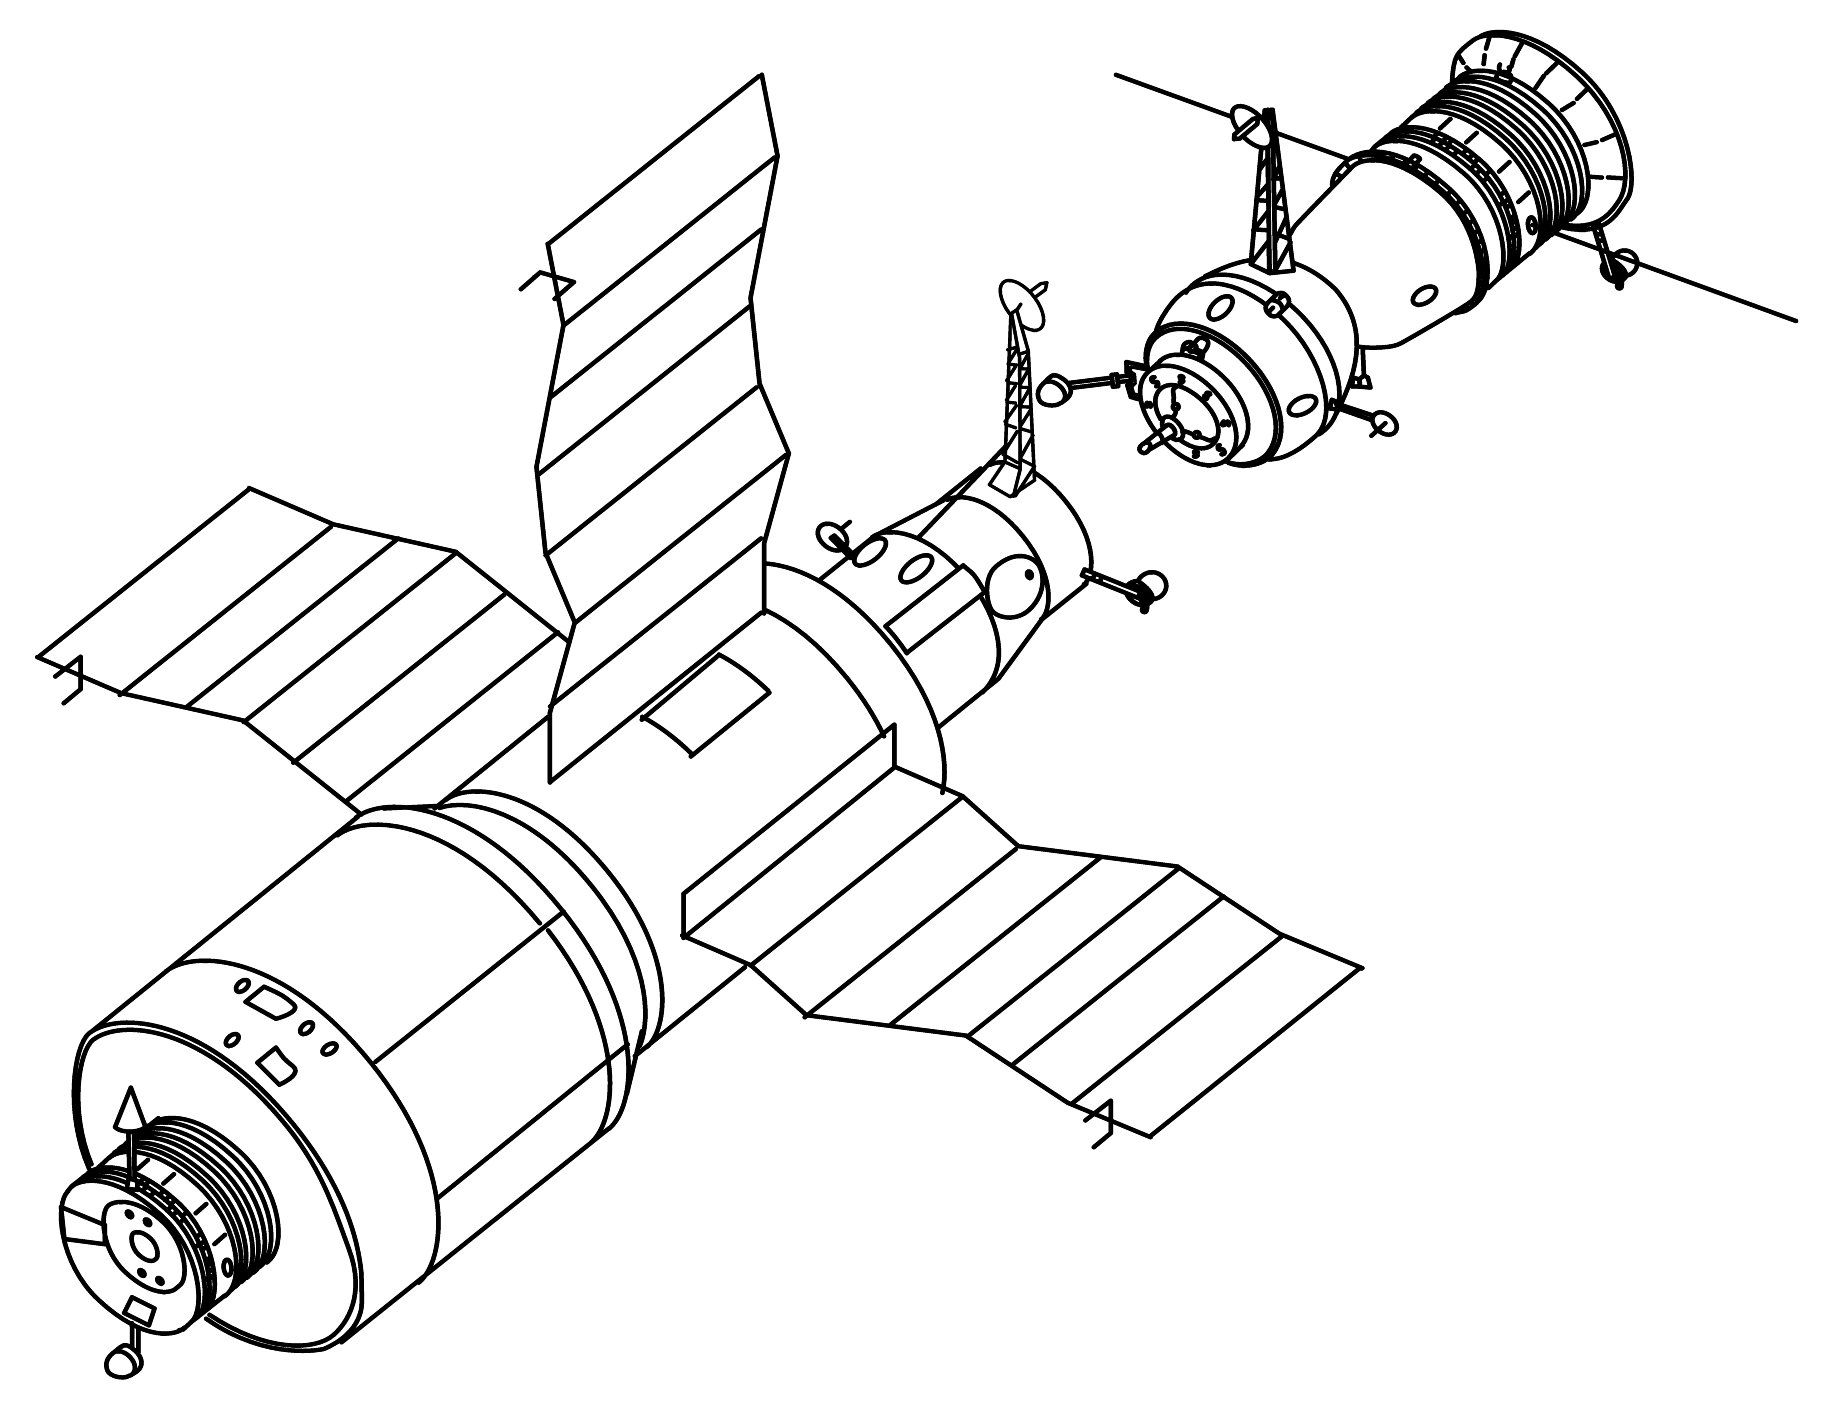 space probes drawings